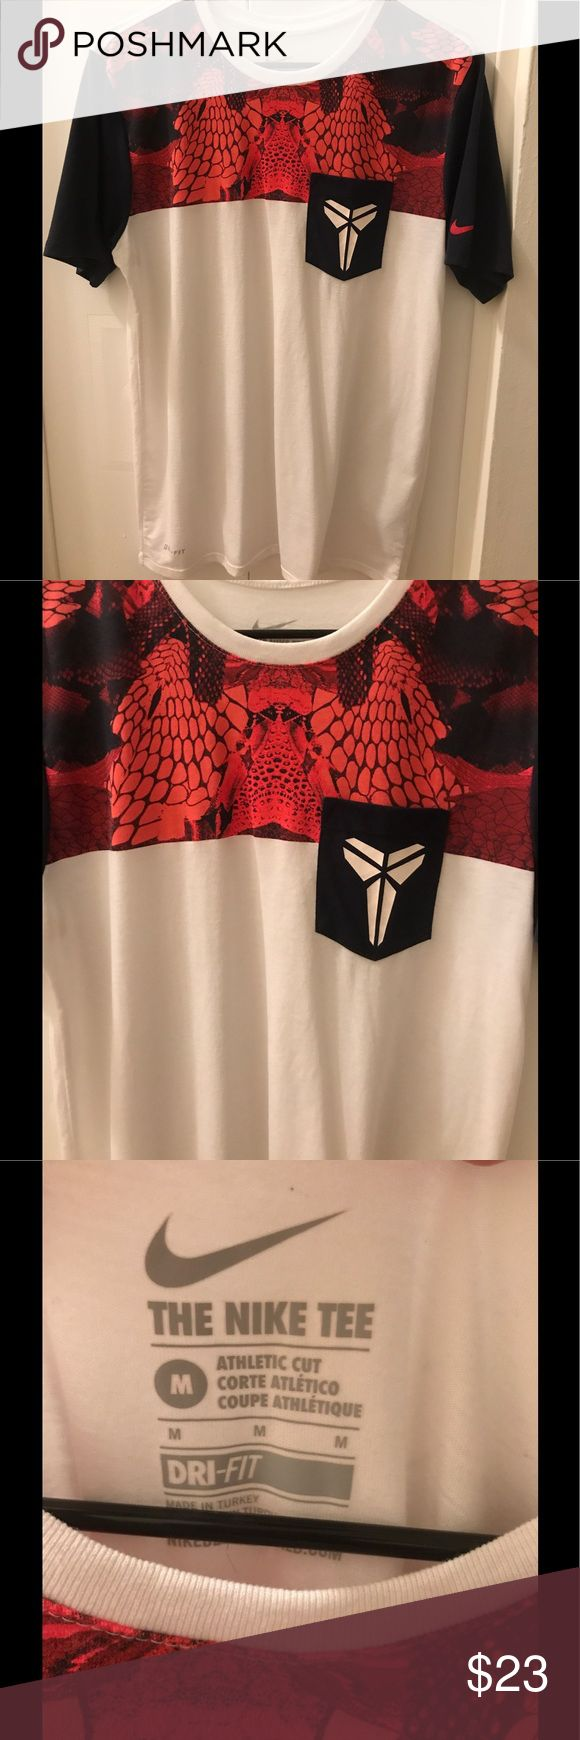 Men's Kobe T-Shirt Good condition! Men's size medium! White shirt with red and navy blue. Nike dri-fit brand. Kobe symbol on front. No trades please! Make me offers 🤗 Nike Shirts Tees - Short Sleeve